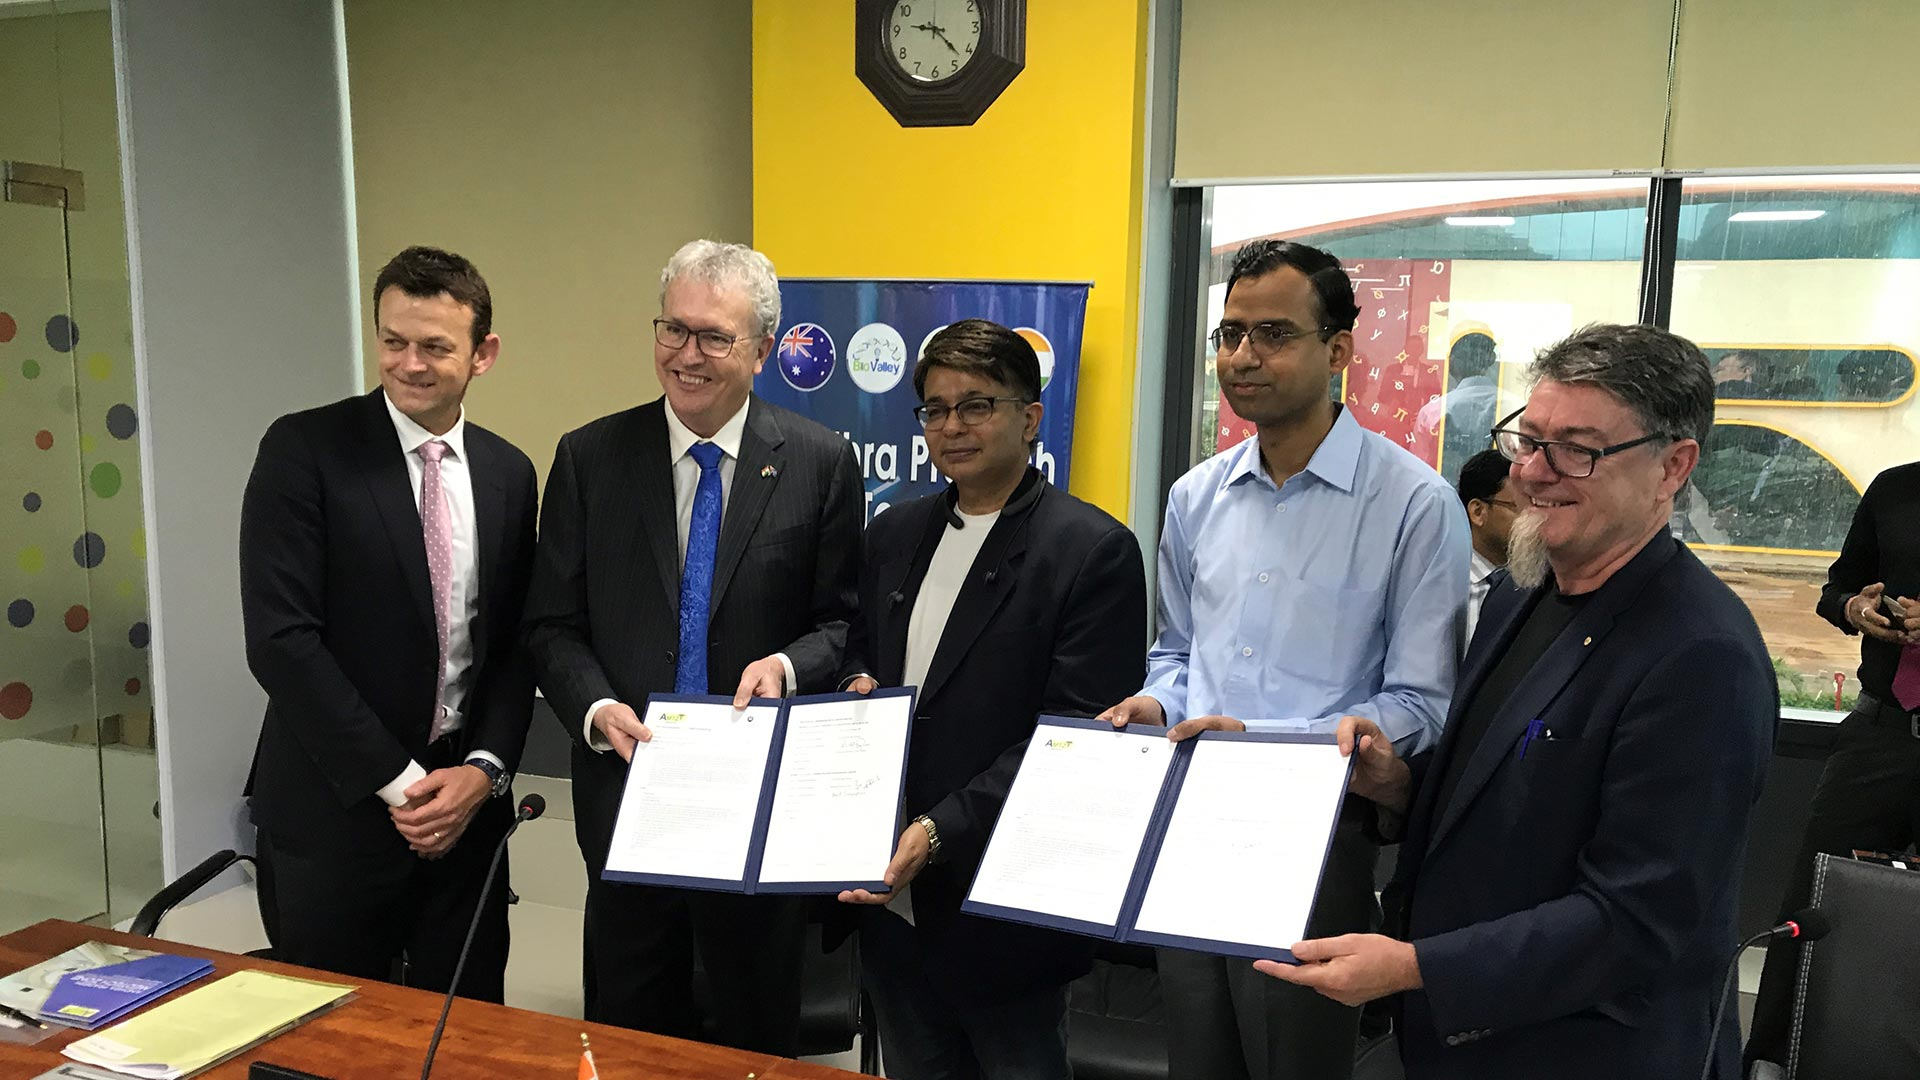 Wollongong expands biomedical ties with India